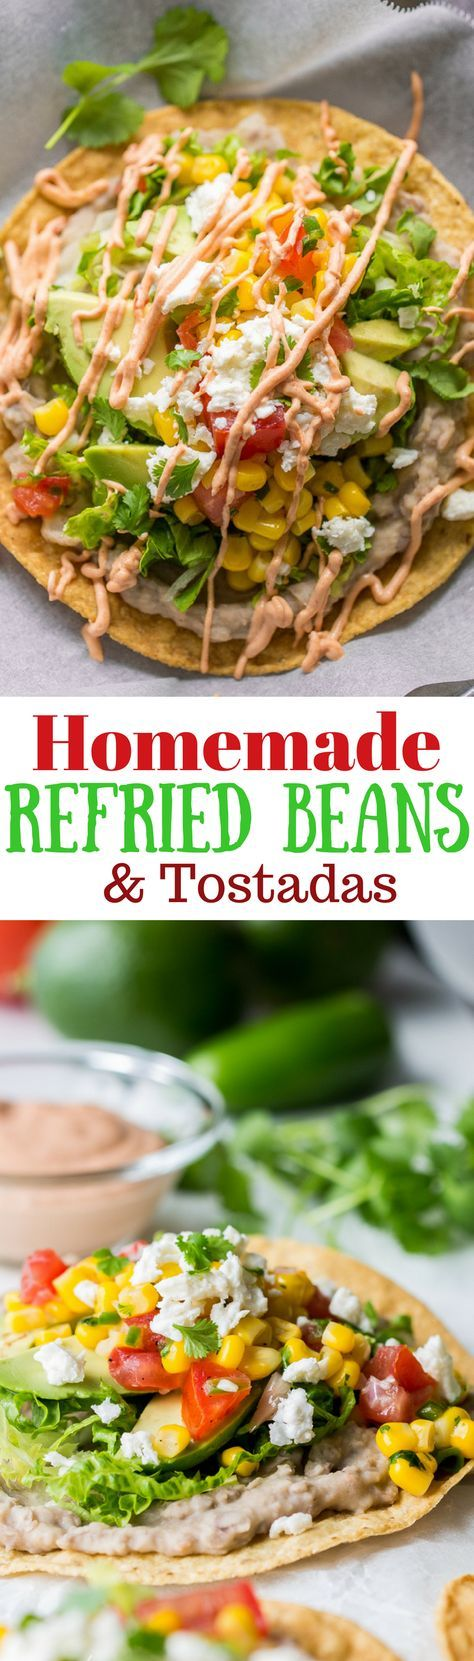 Creamy spicy Homemade Refried Beans. A wonderful side dish or great base for tacos, burritos, quesadillas, nachos or tostadas. www.savingdessert.com